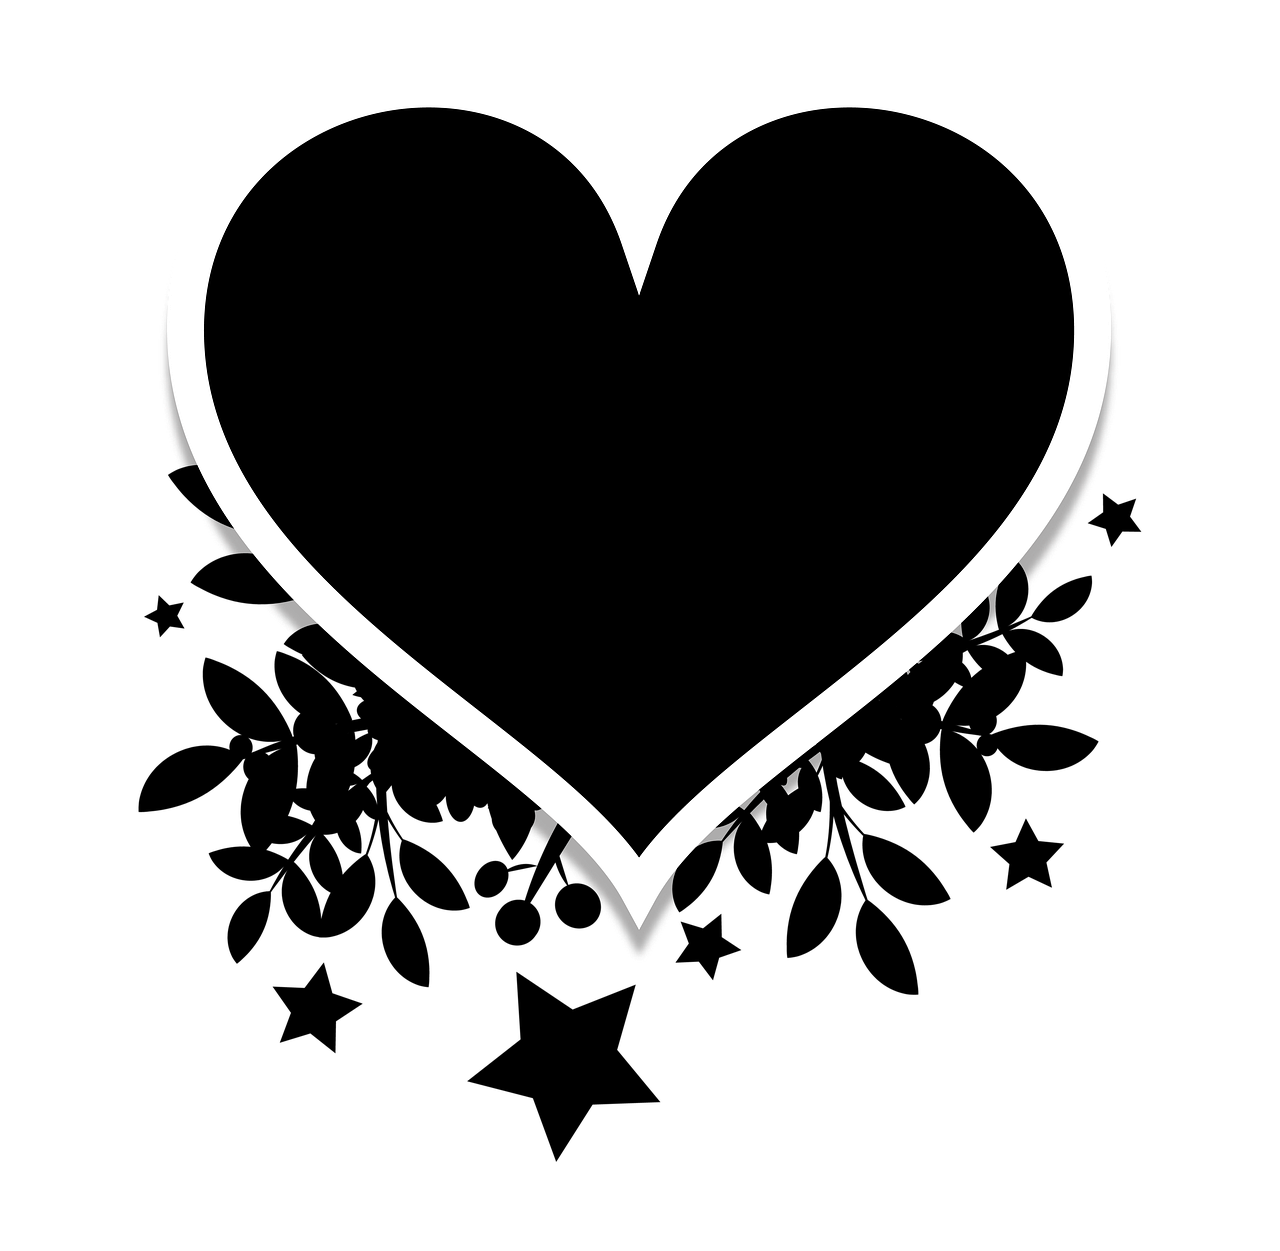 Silhouette Heart Black Free Image On Pixabay